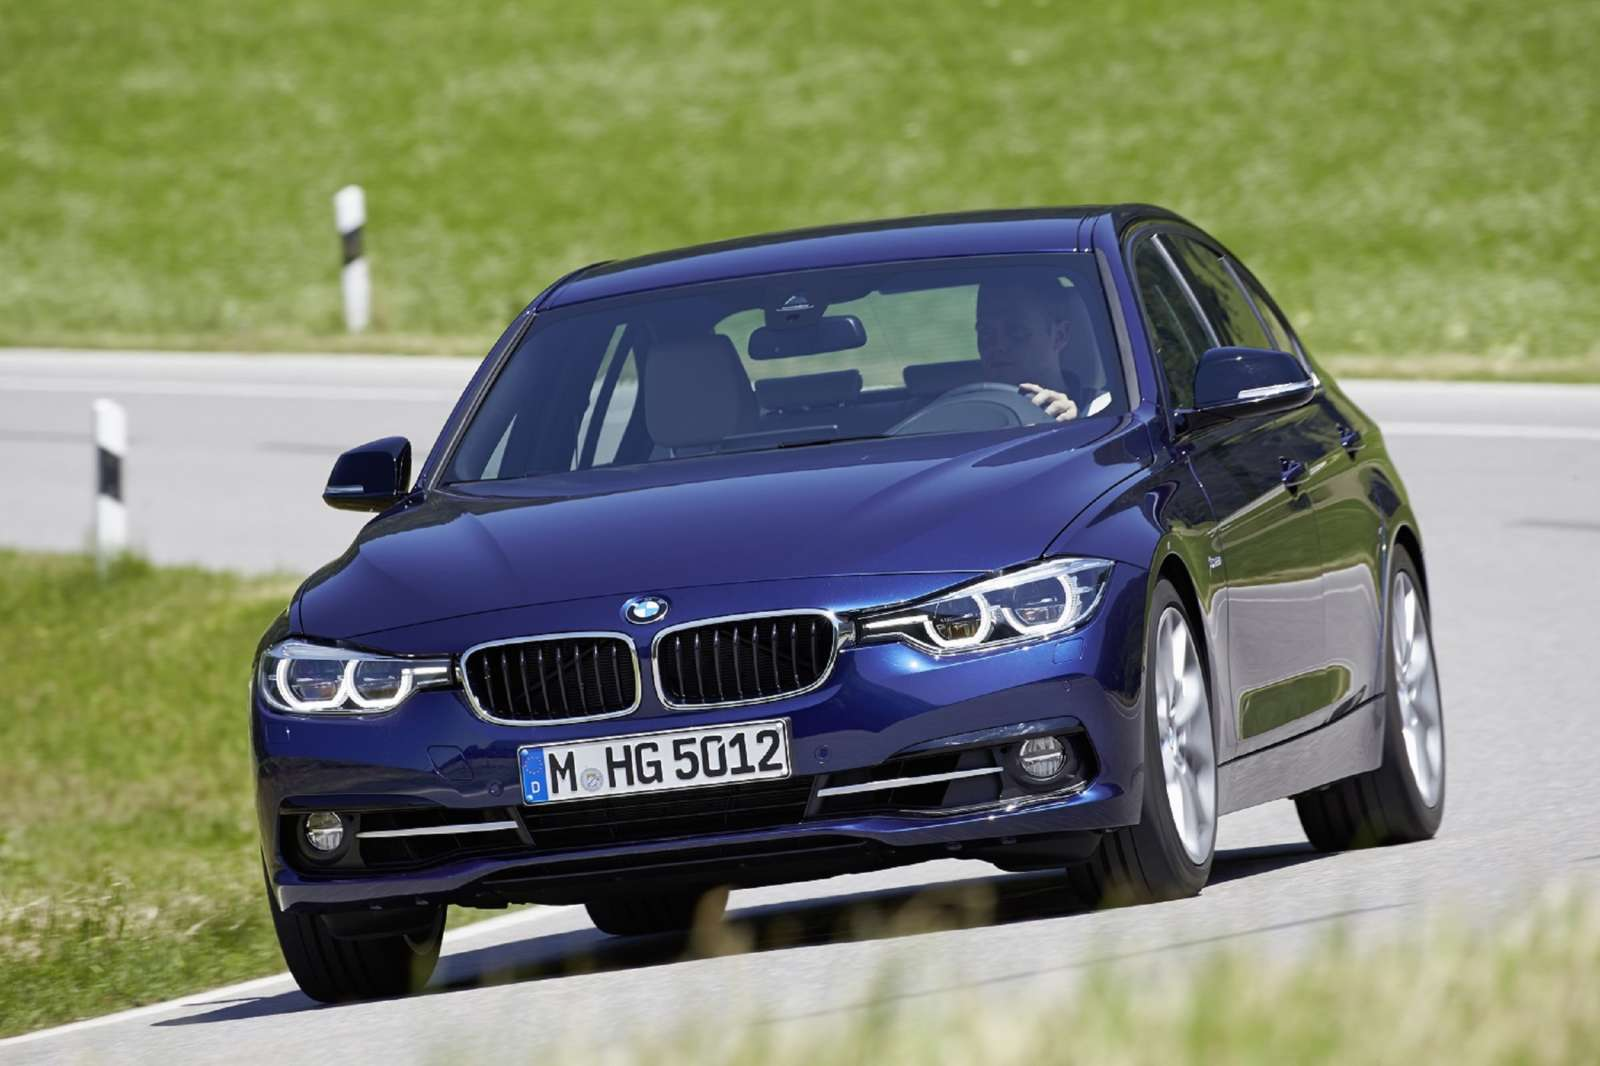 The New Bmw 3 Series Launched In India Prices Start At Inr 35